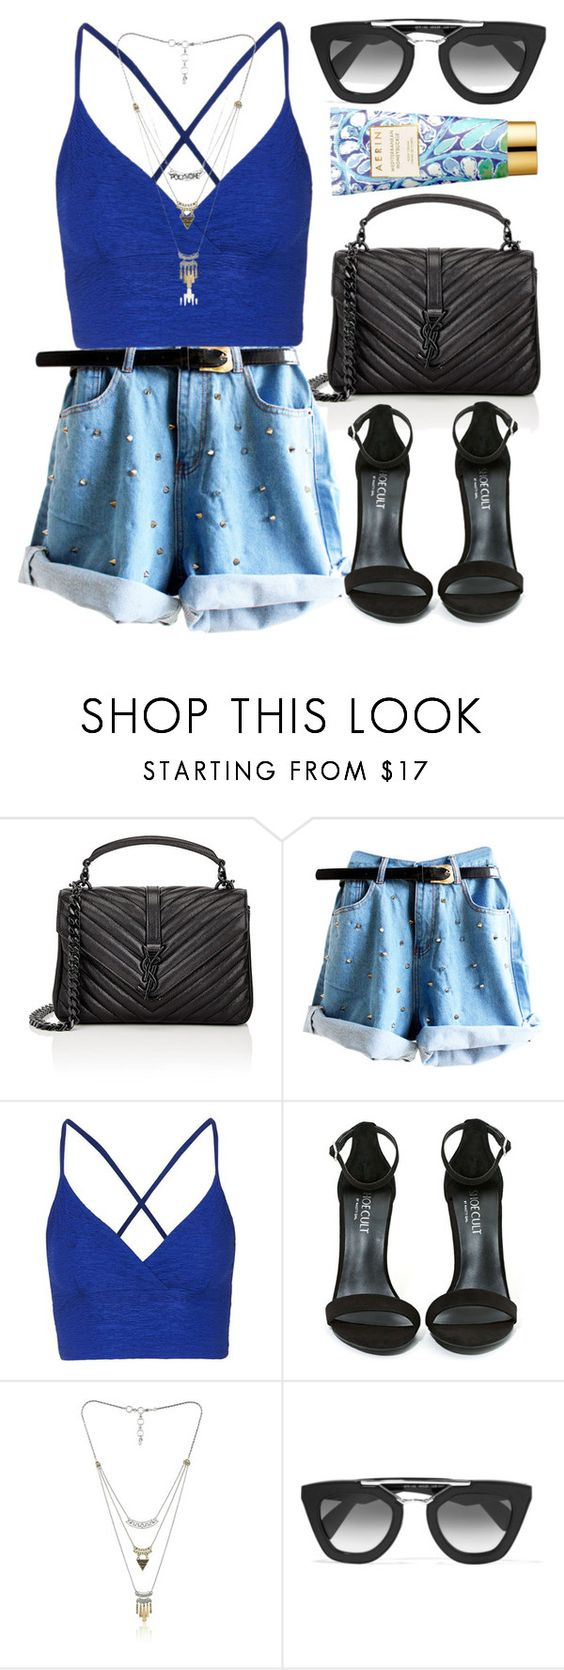 """""""#PVStyleInsiderContest"""" by amoiblog ❤ liked on Polyvore featuring Yves Saint Laurent, Topshop, Shoe Cult, Lucky Brand, Prada, AERIN, contestentry, styleinsider and PVStyleInsiderContest"""